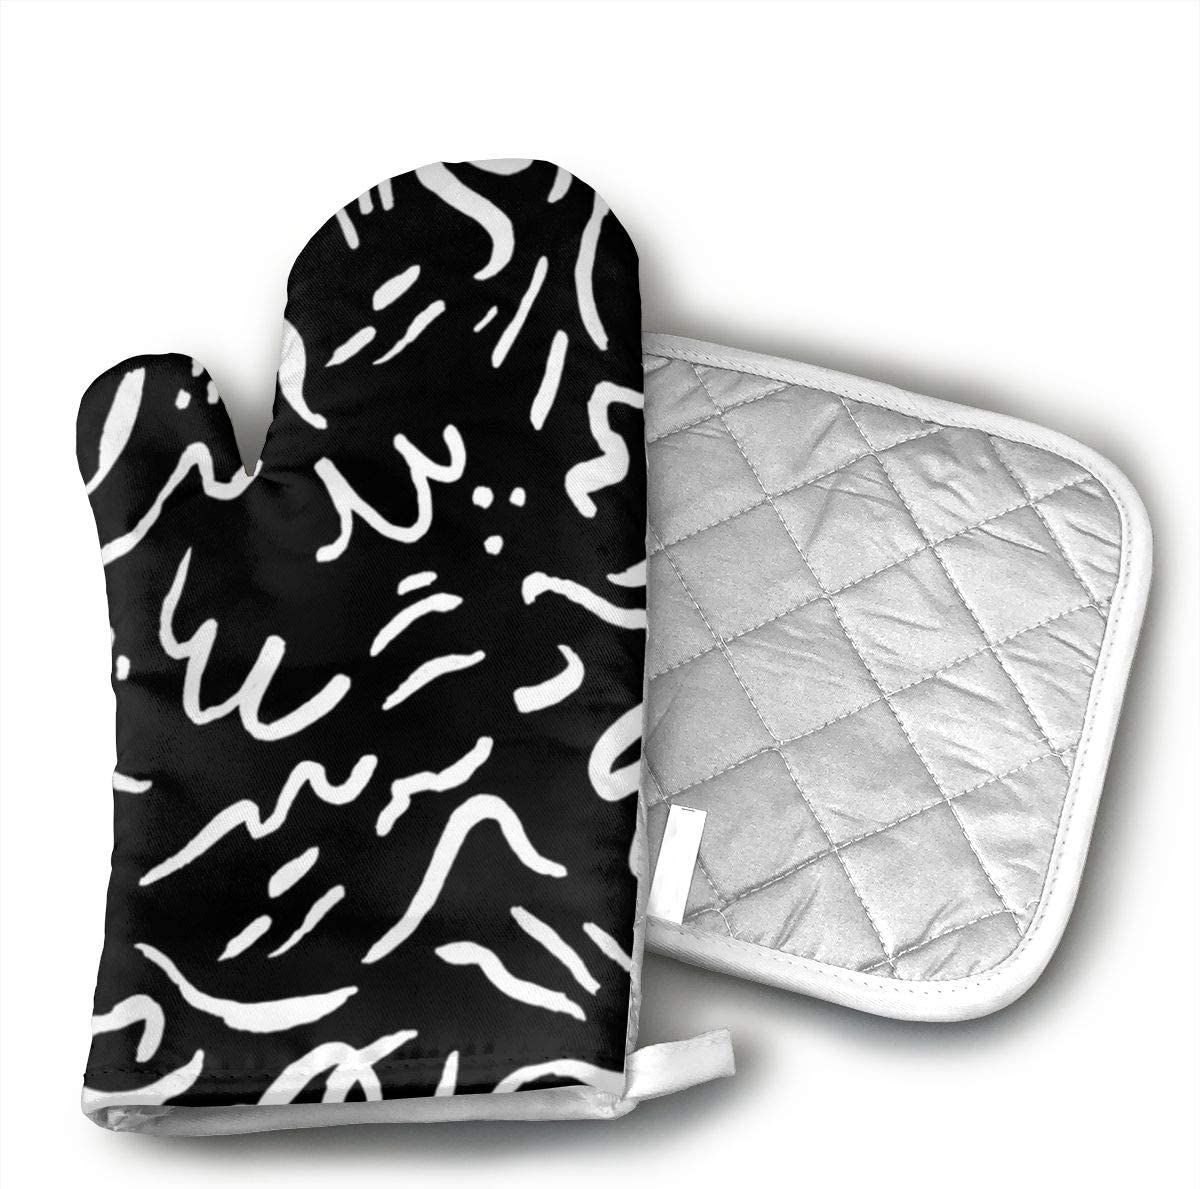 JHUIN Patterns - Will Bryant Studio Insulation Gloves,1 Pair of Non Slip Kitchen Oven Gloves for Cooking,Baking,Grilling,Barbecue Potholders